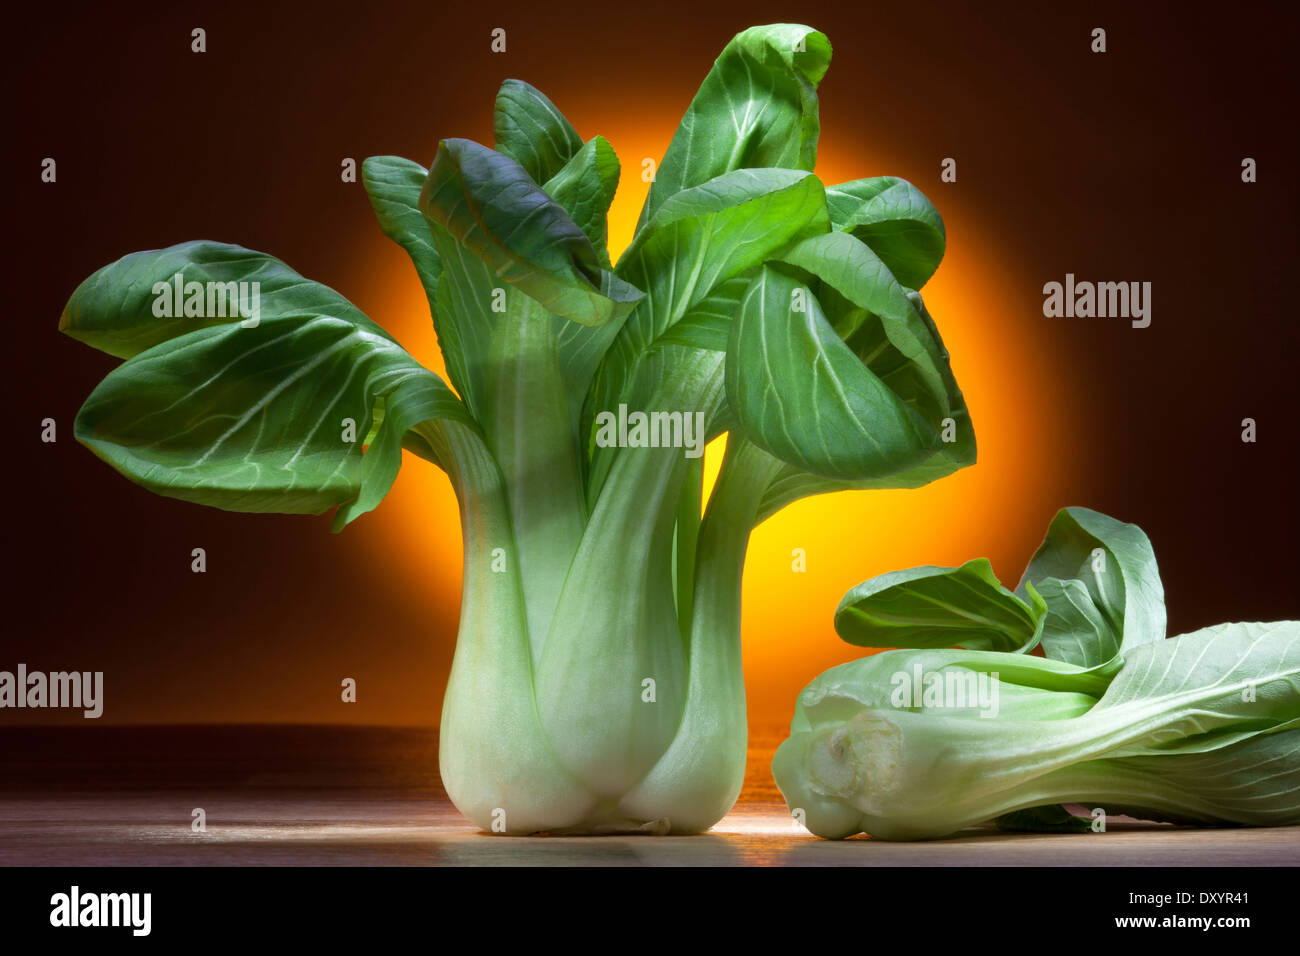 Bok Choy, Pak Chol or Pak Choi is a Chinese cabbage of a variety with smooth-edged tapering leaves. - Stock Image